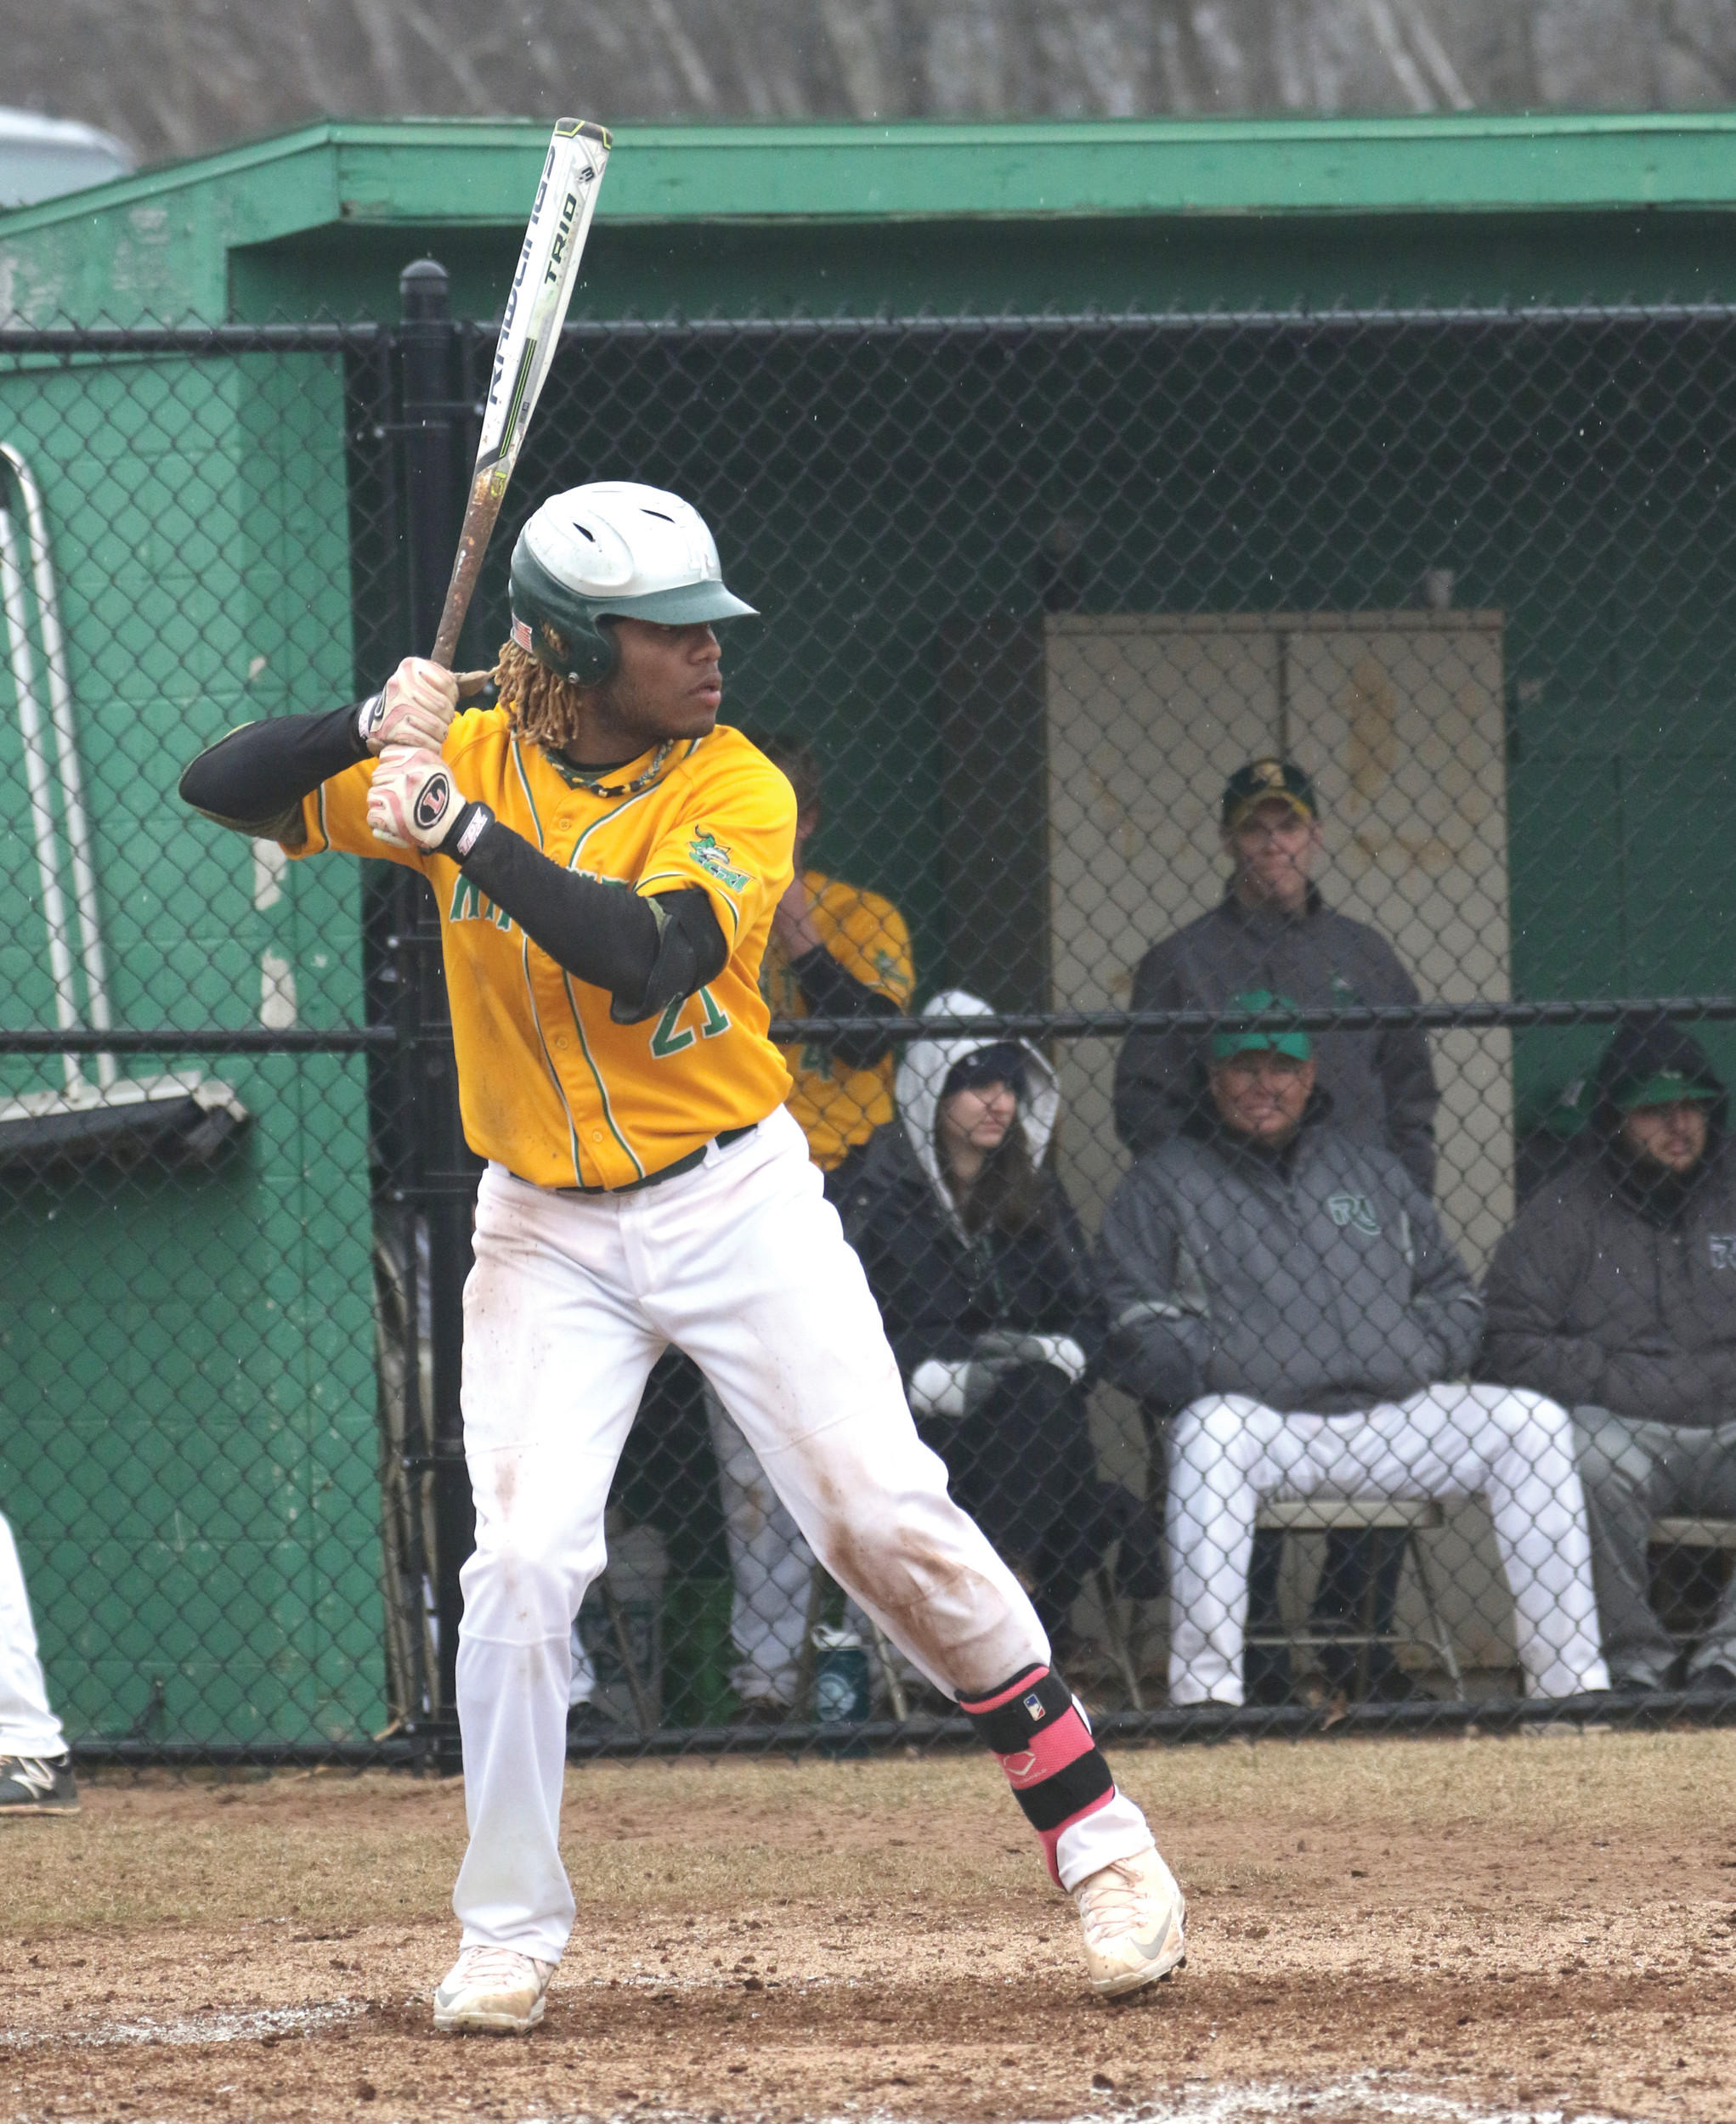 CLUTCH: Deiviz Lara's walk-off double lifted CCRI over Southern Maine in Game 2.